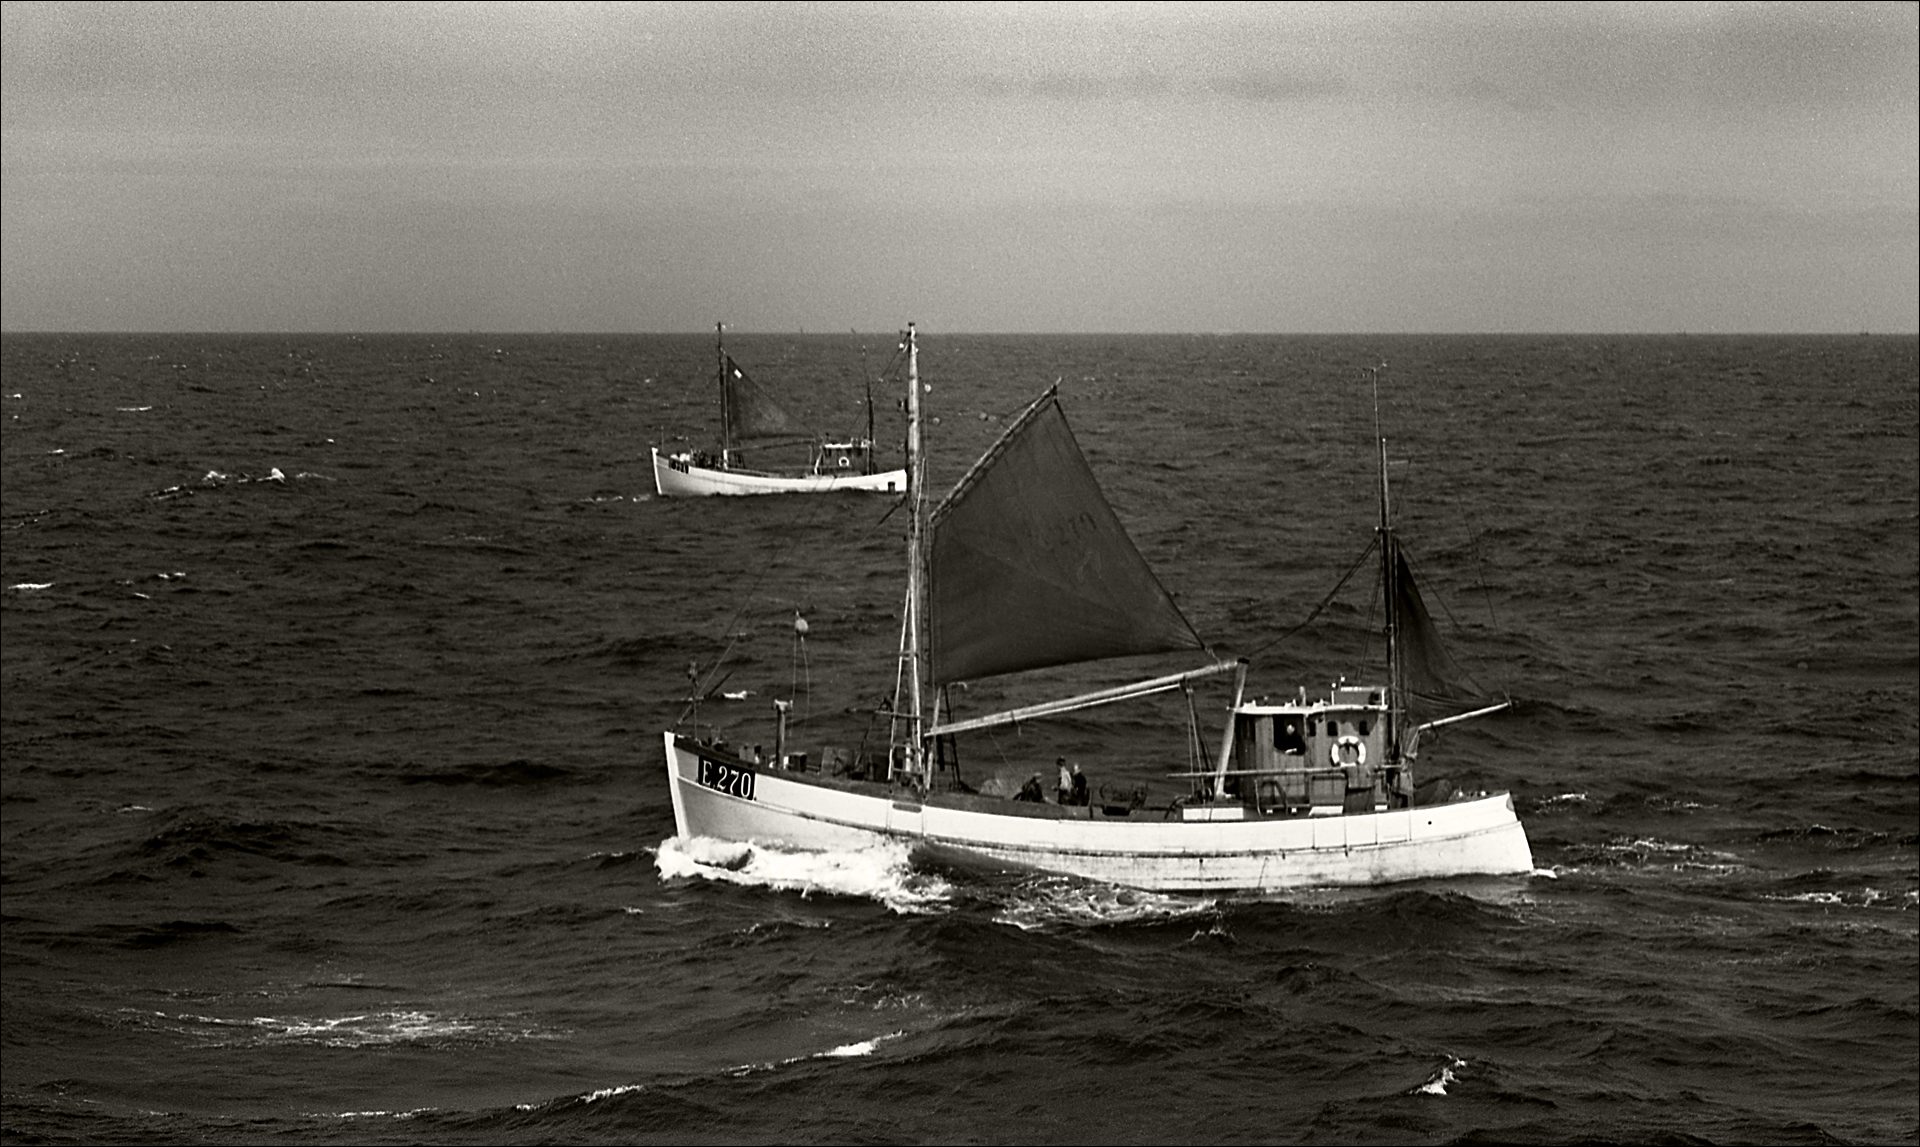 Fishing Boat, Near Cornwall, GB